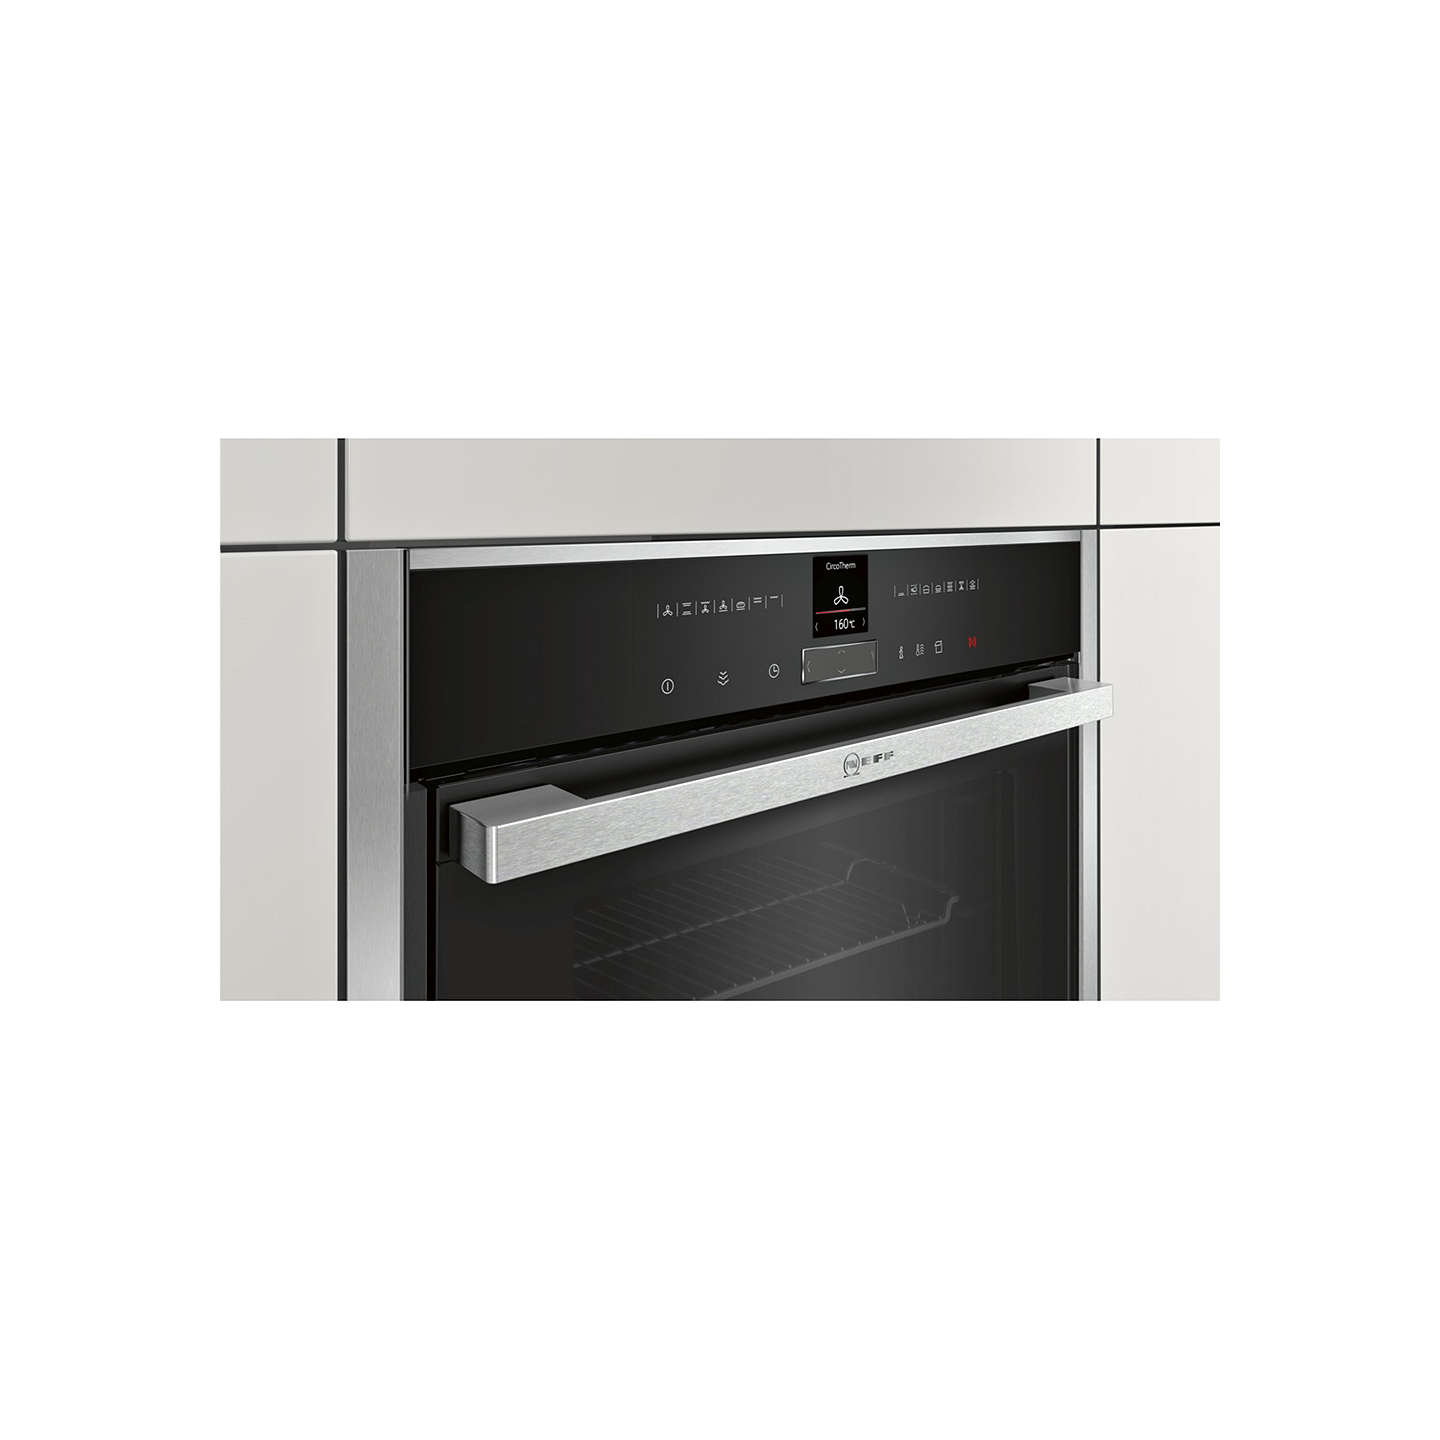 neff b57vr22n0b slide and hide single electric oven stainless steel at john lewis. Black Bedroom Furniture Sets. Home Design Ideas